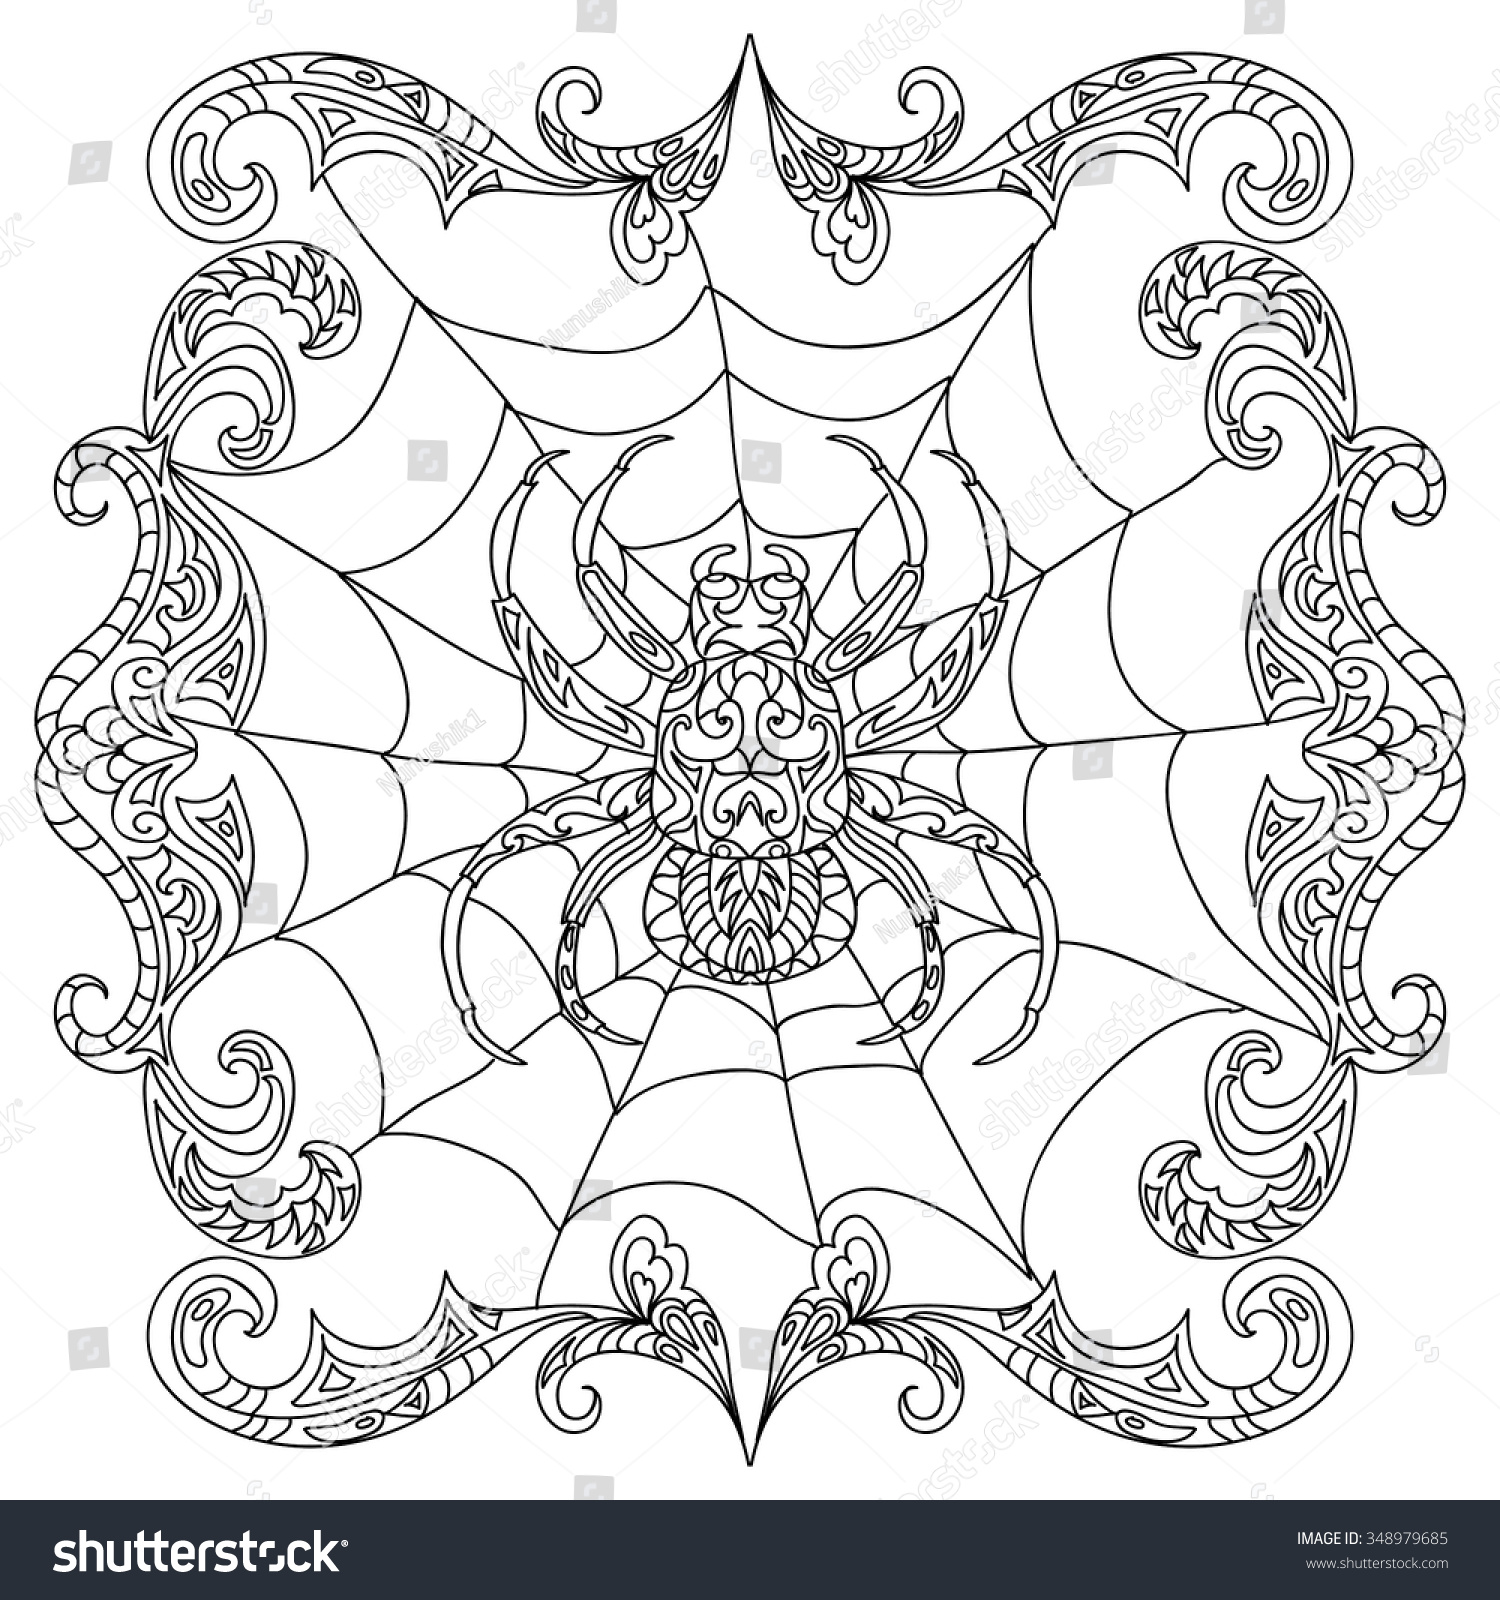 Spider Zentangle Coloring Page Stock Vector Shutterstock